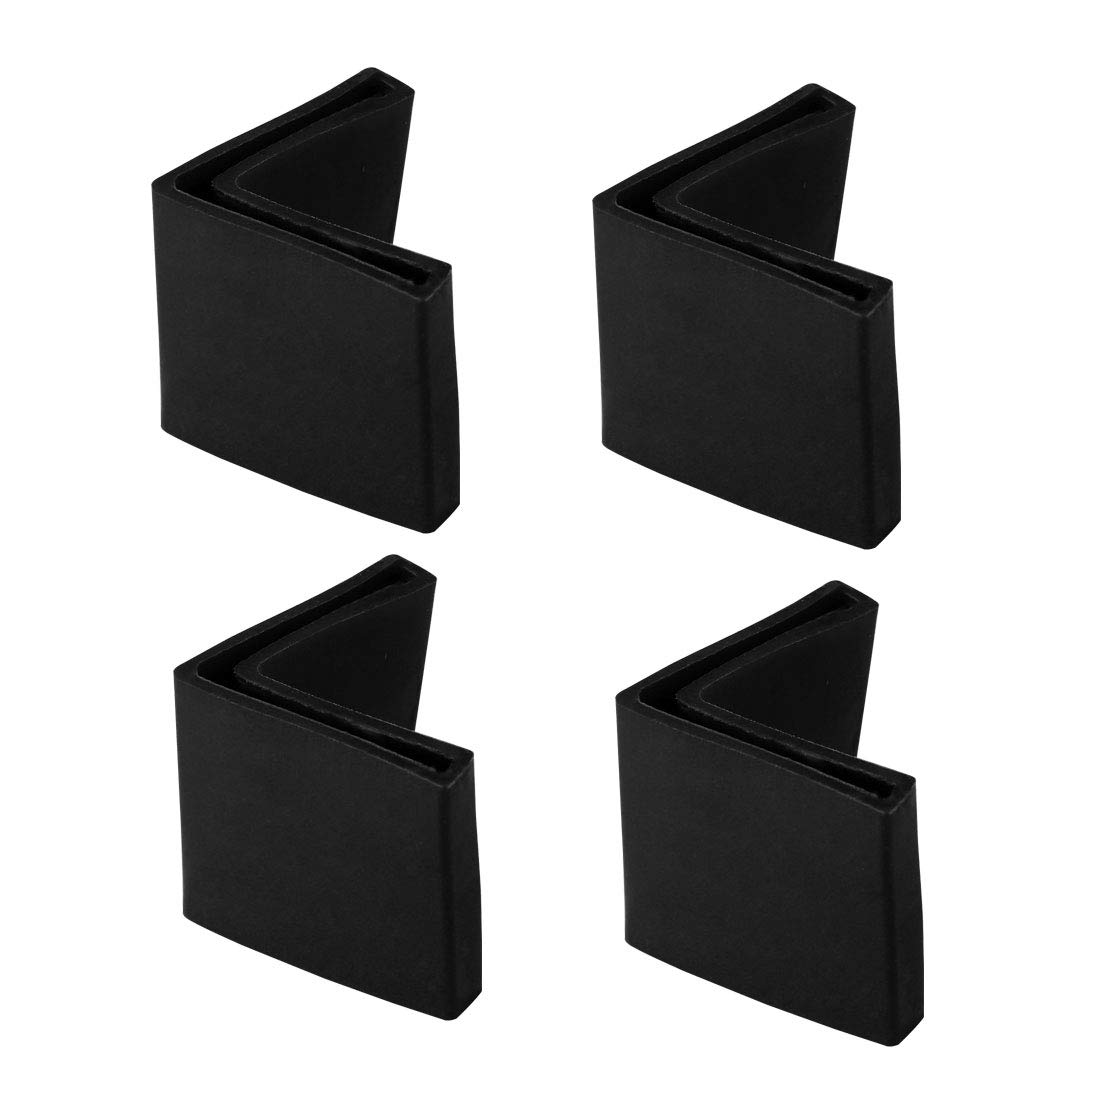 uxcell 25mm x 25mm Angle Iron Foot Pads L Shaped PVC Furniture Desk Leg Caps End Covers Floor Protector Black 4 Pcs